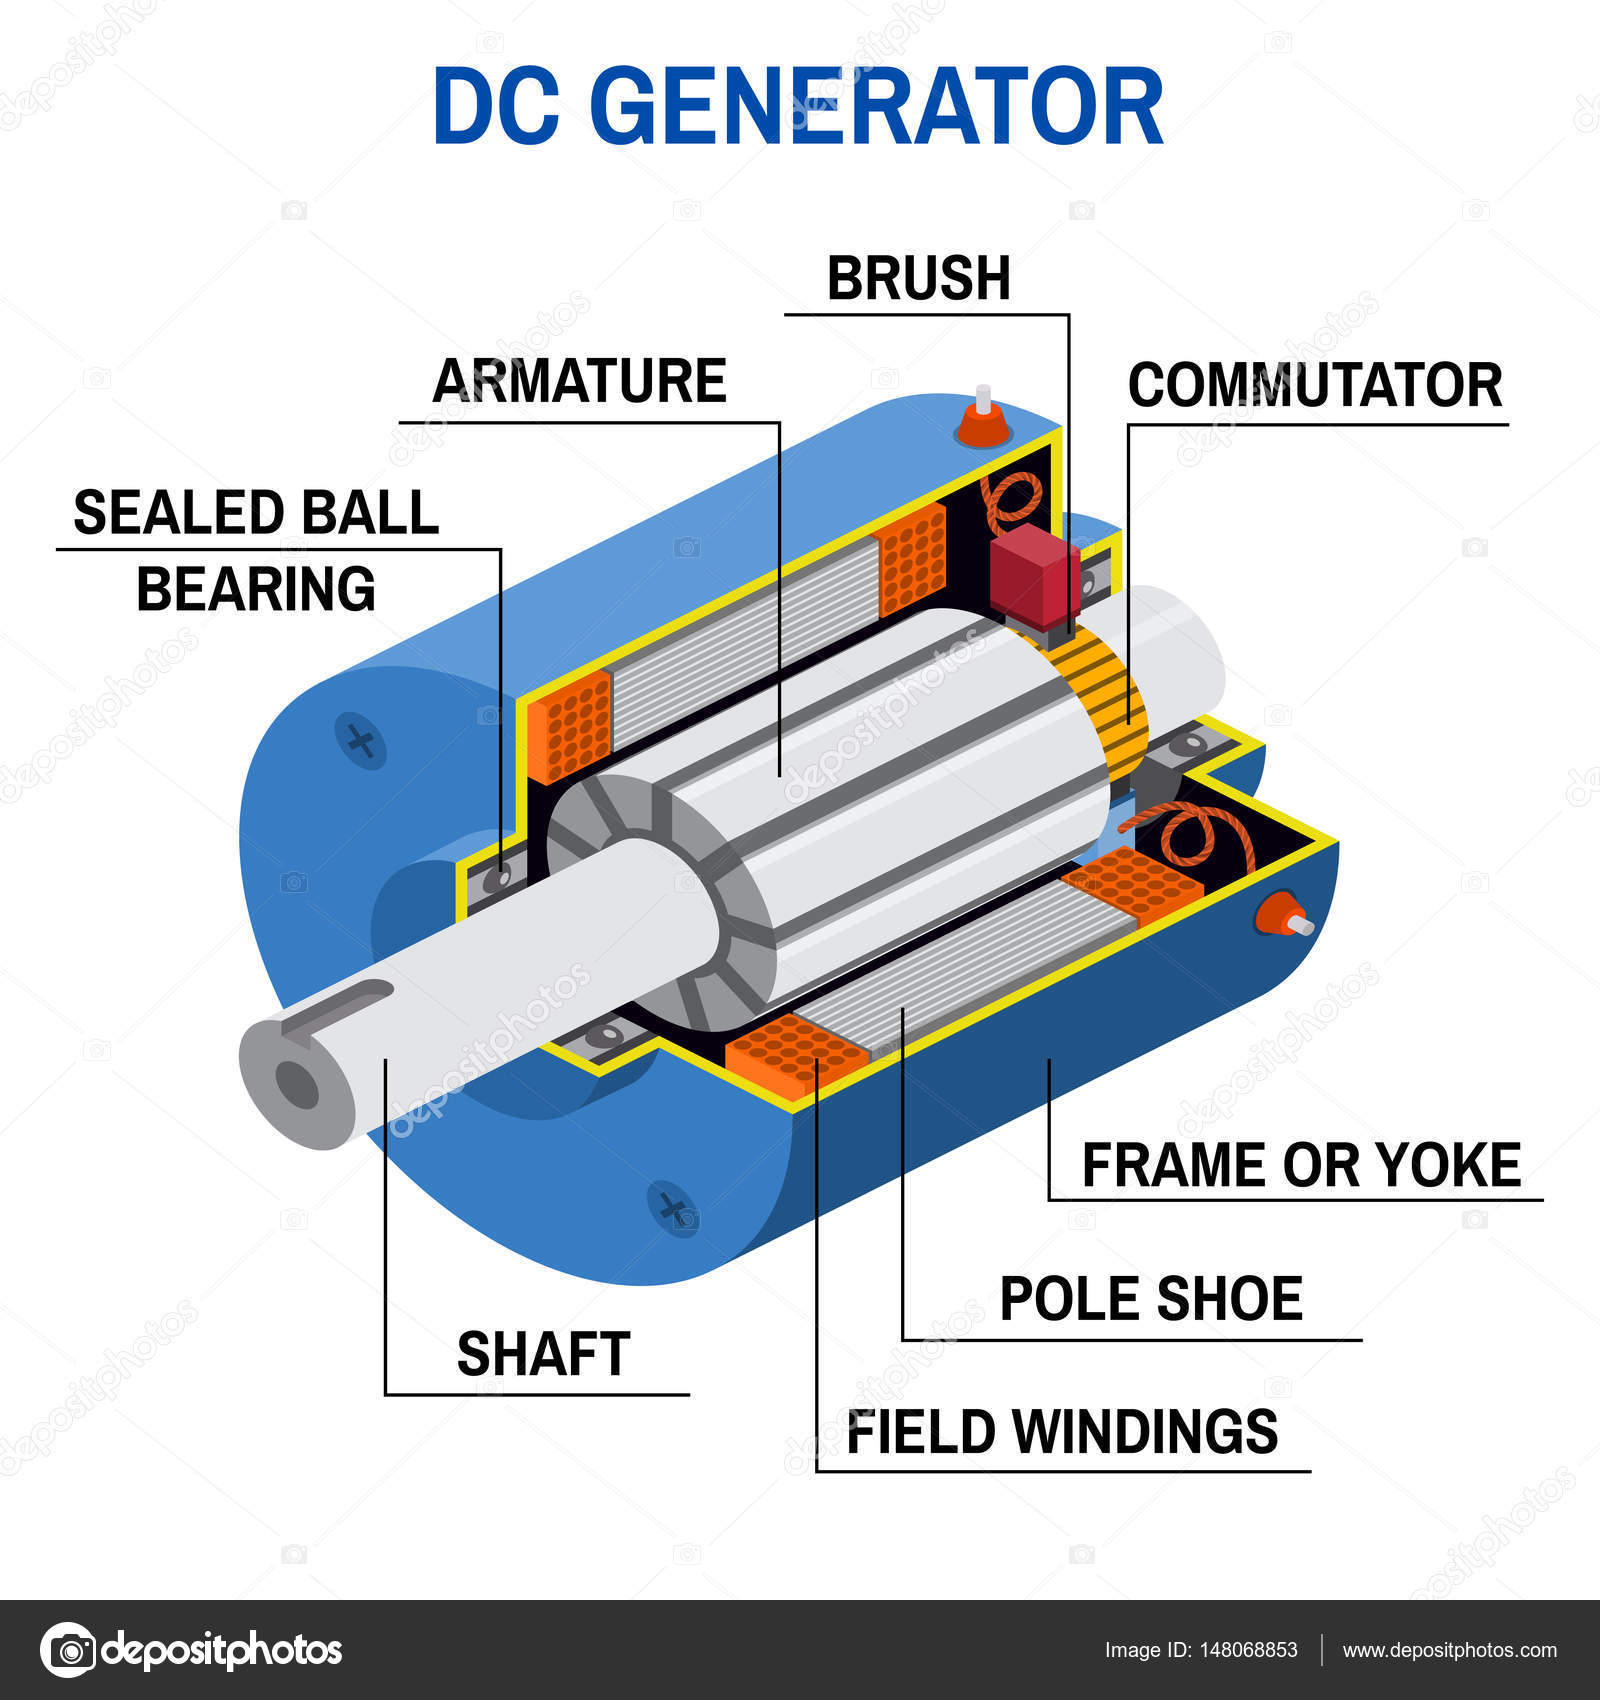 Dc Generator Cross Diagram   U2014 Stock Vector  U00a9 Serdiuk Igor